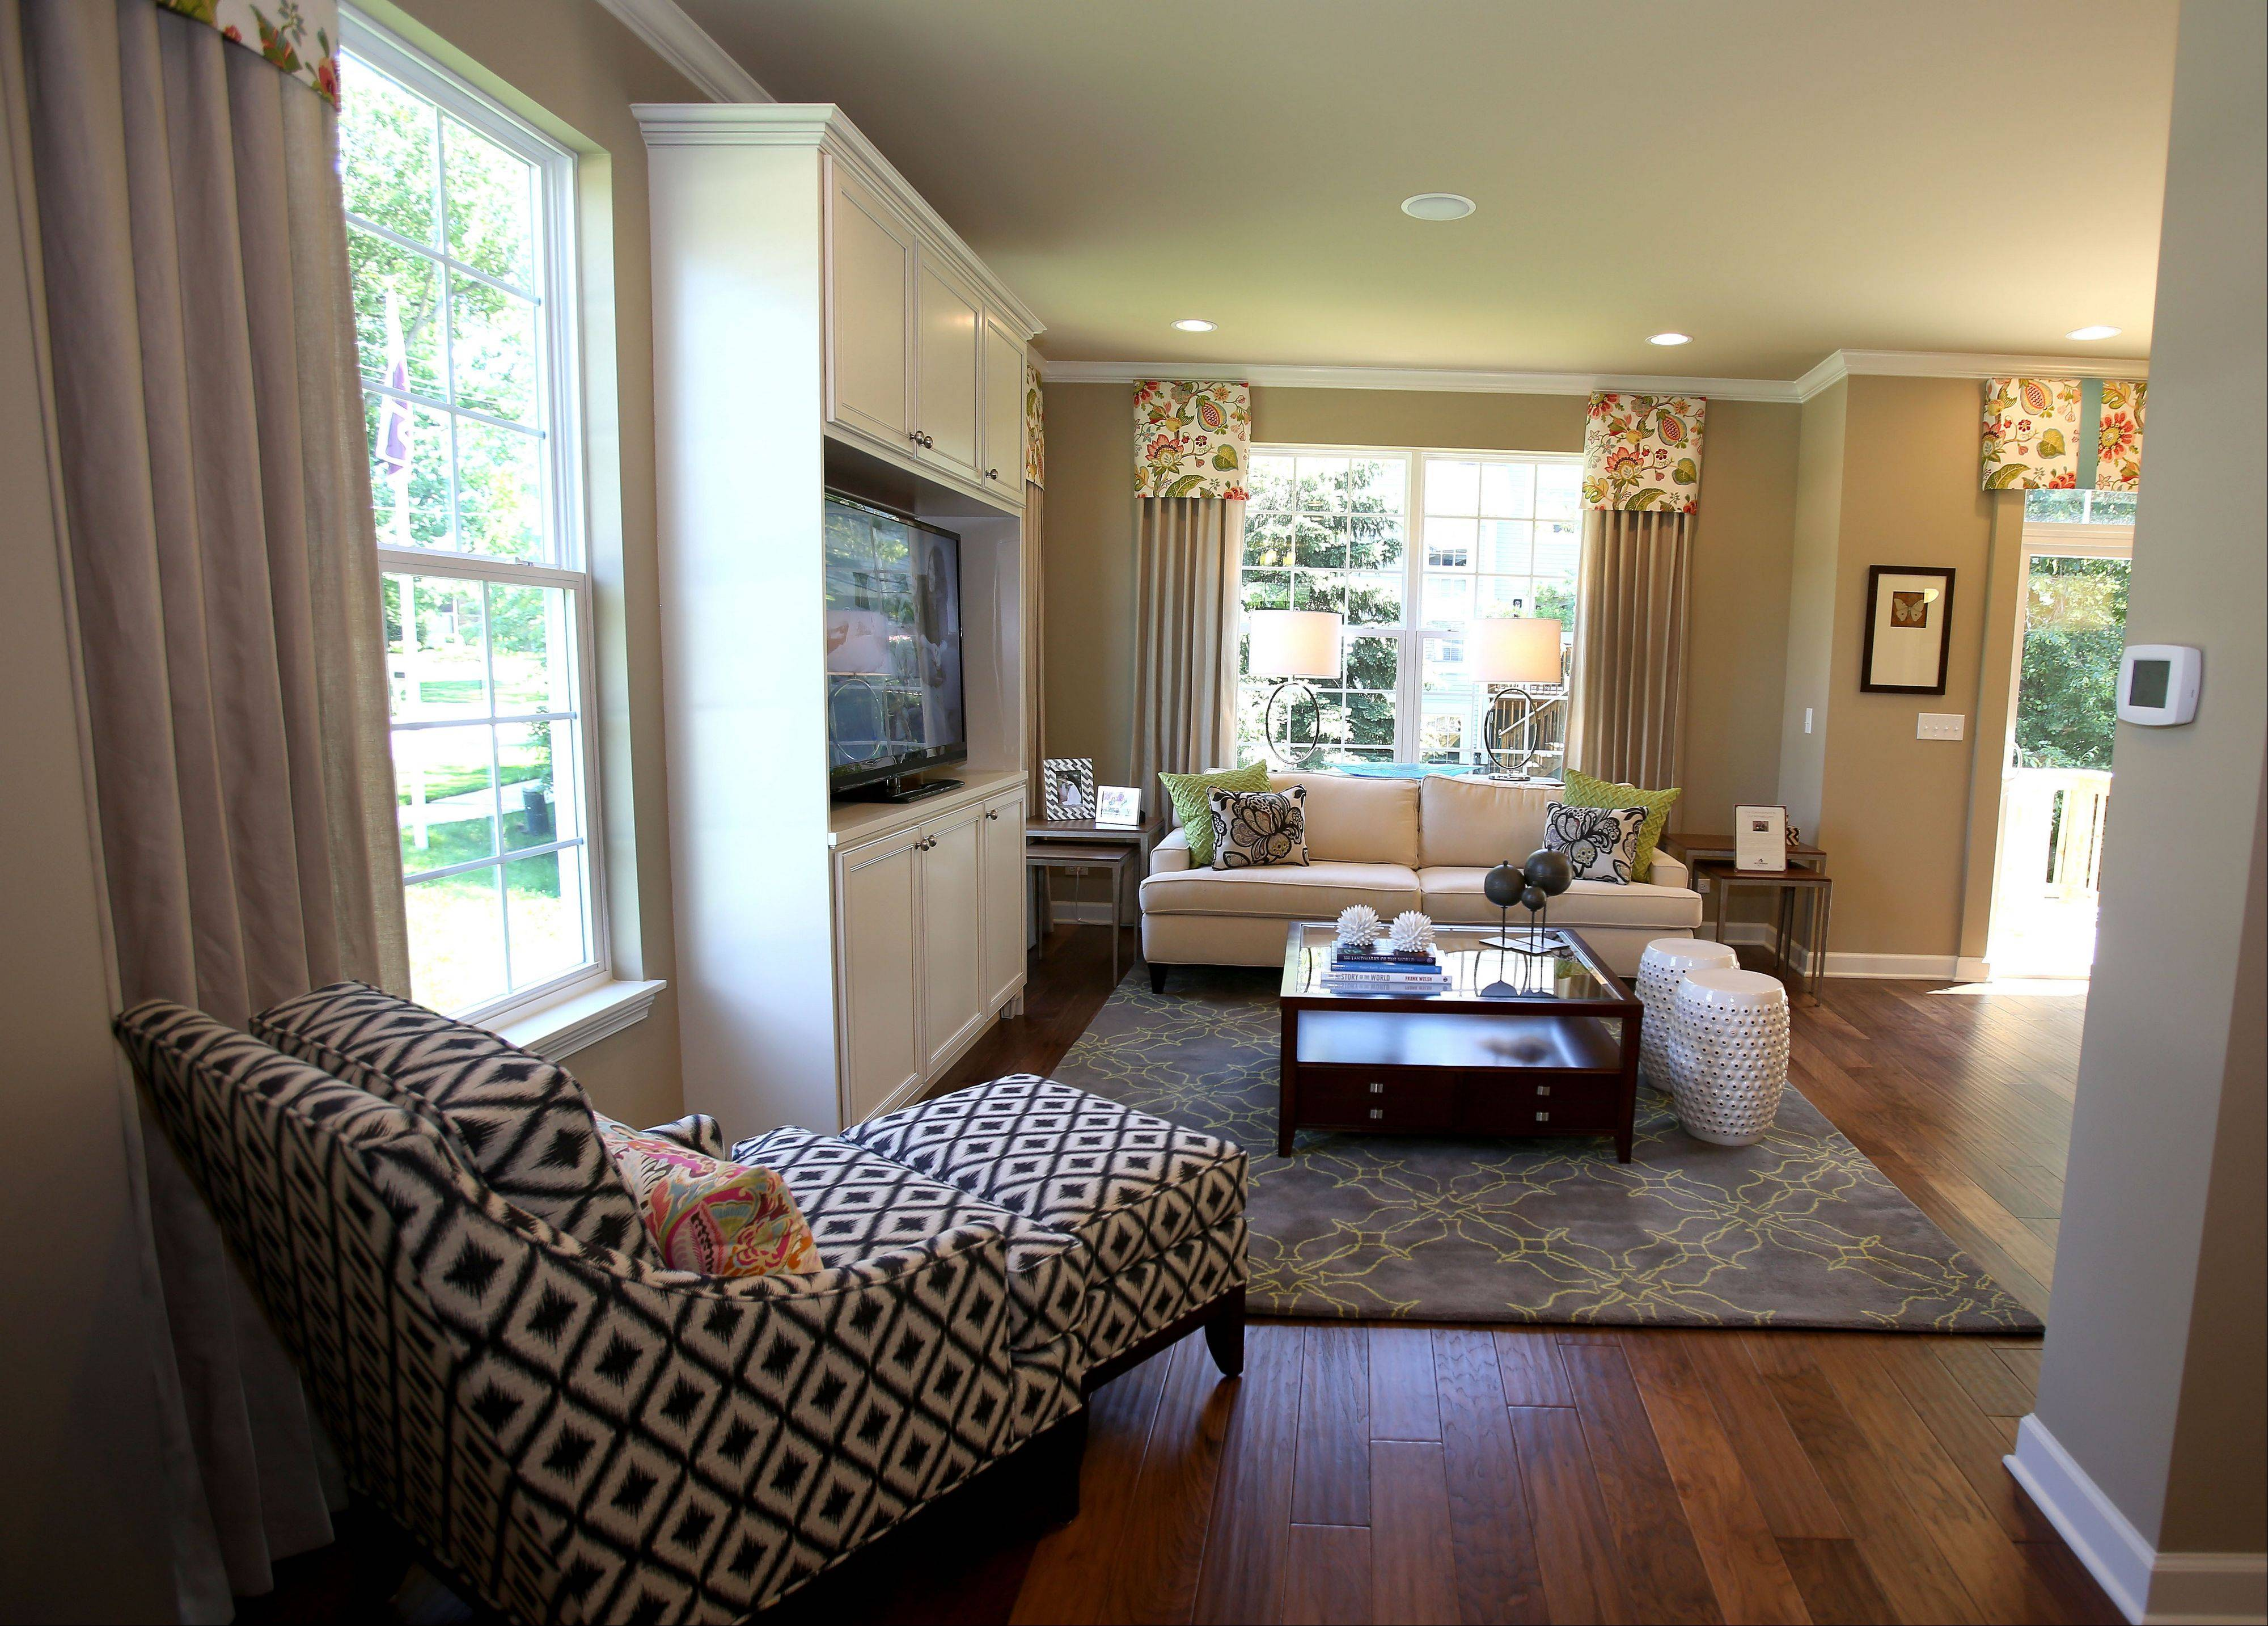 The furnished Braeden model at The Orchards, M/I Homes' new townhouse development in Lombard, is now open for viewing.